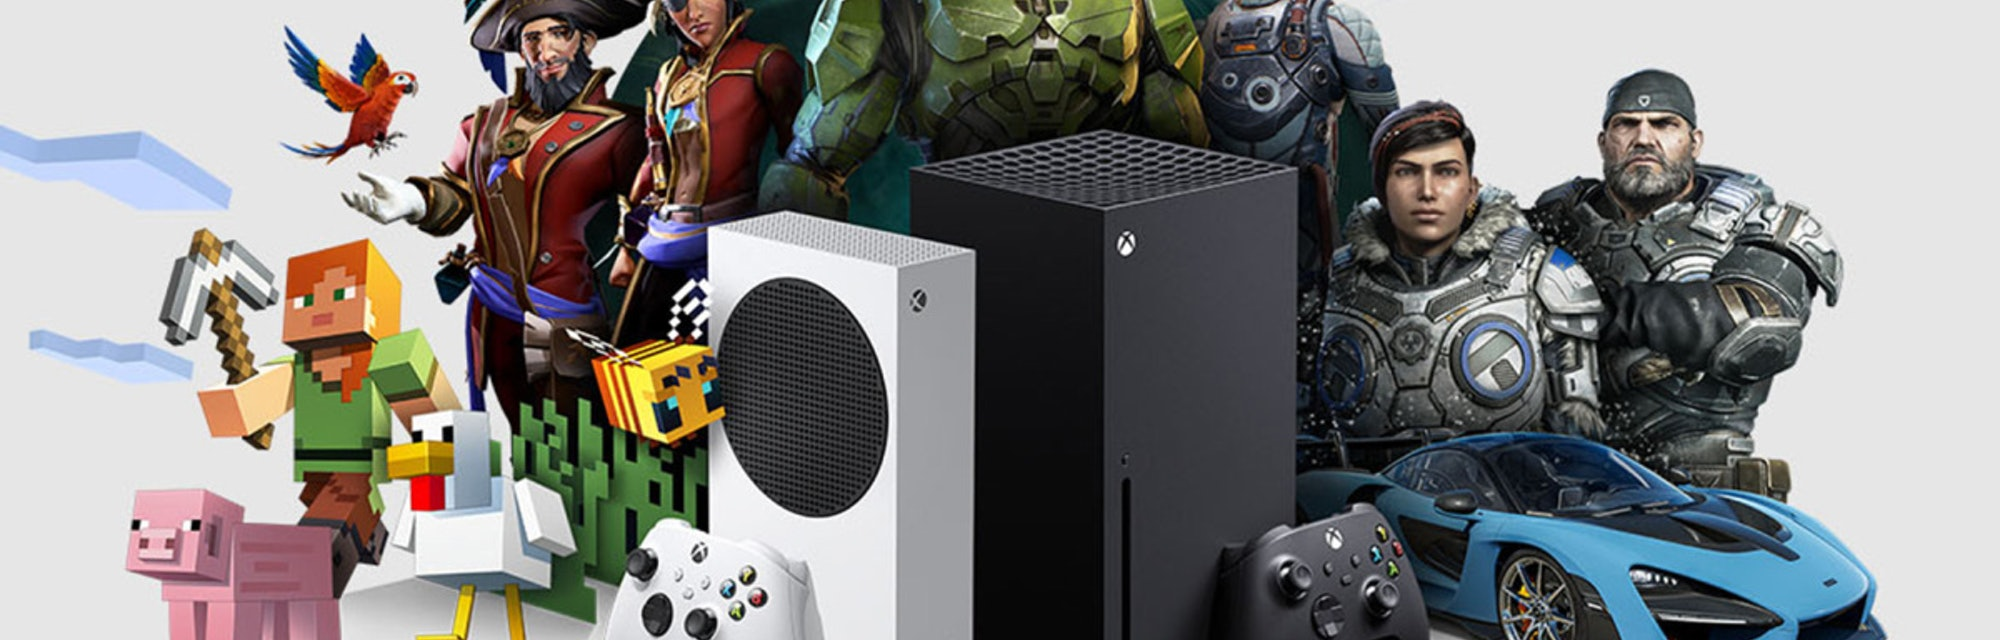 Xbox Pre Orders Series X Vs Series S Differences Financing Options Explained